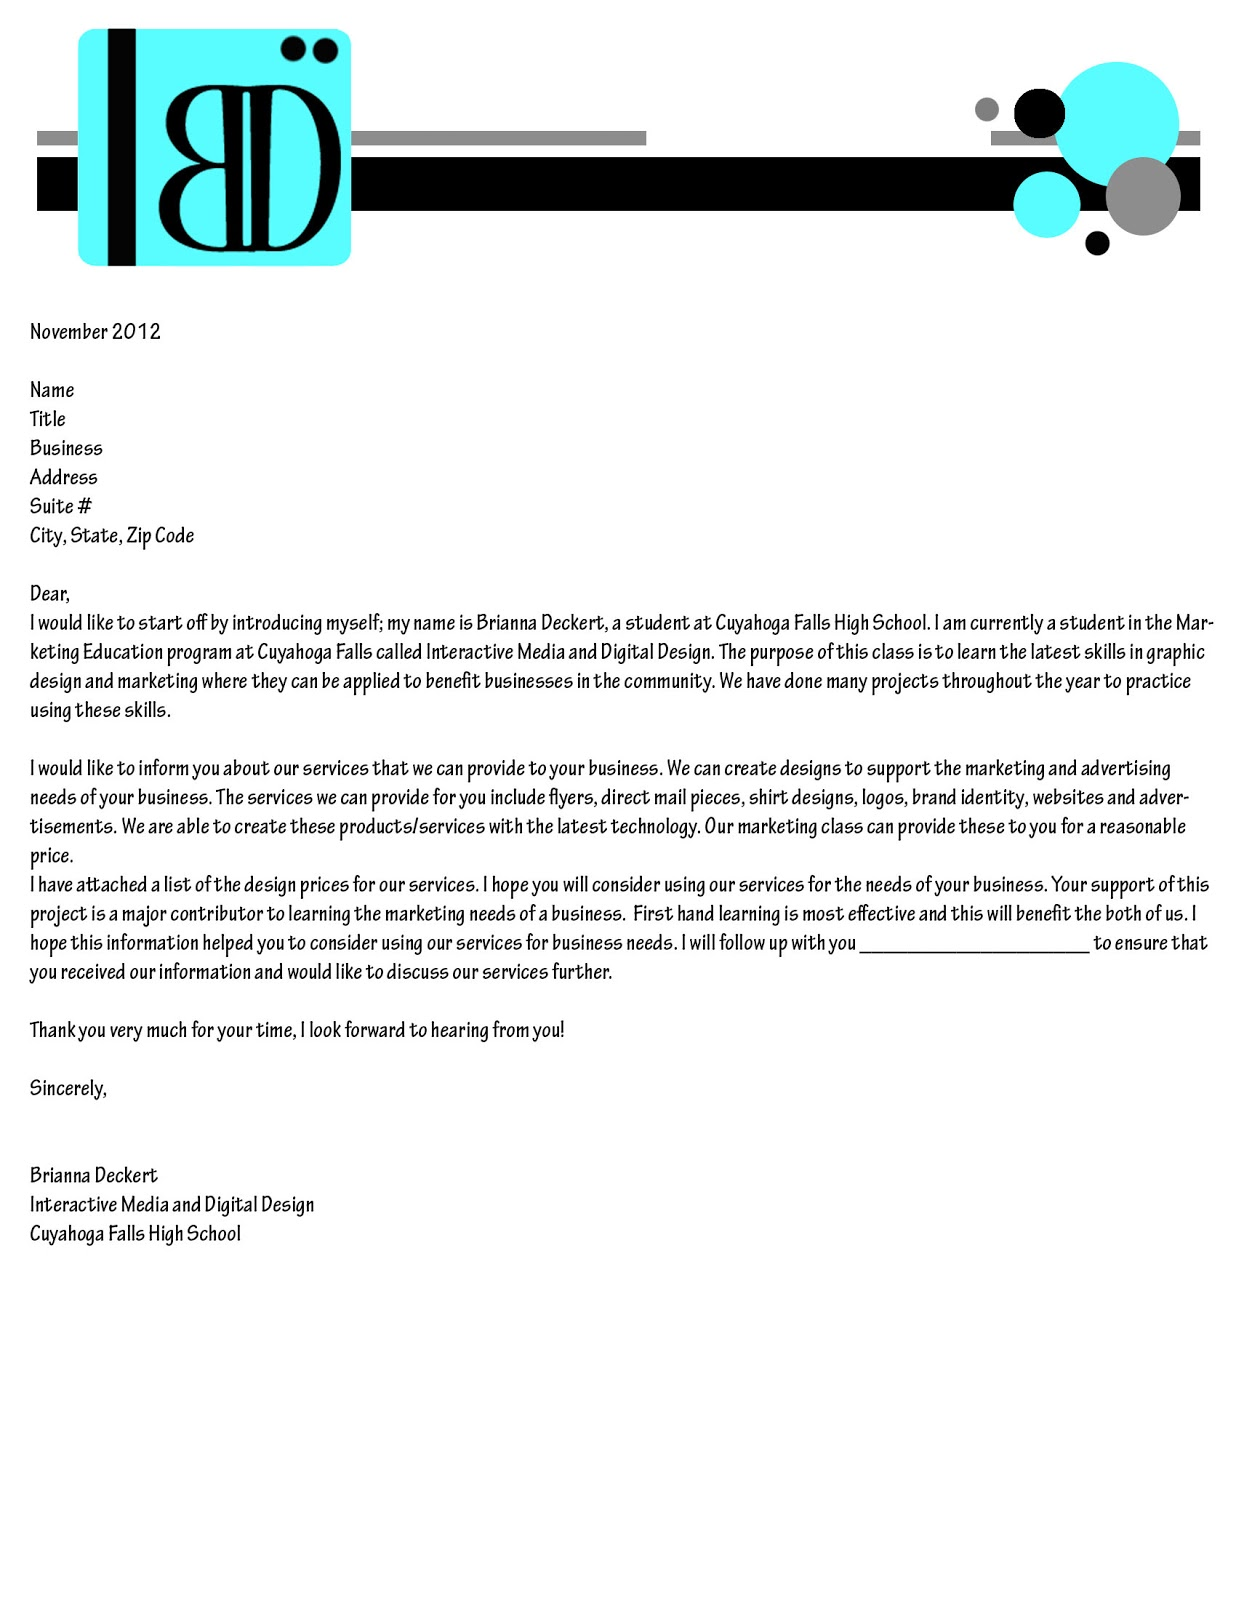 My Good Life In Marketing Education My Business Letter